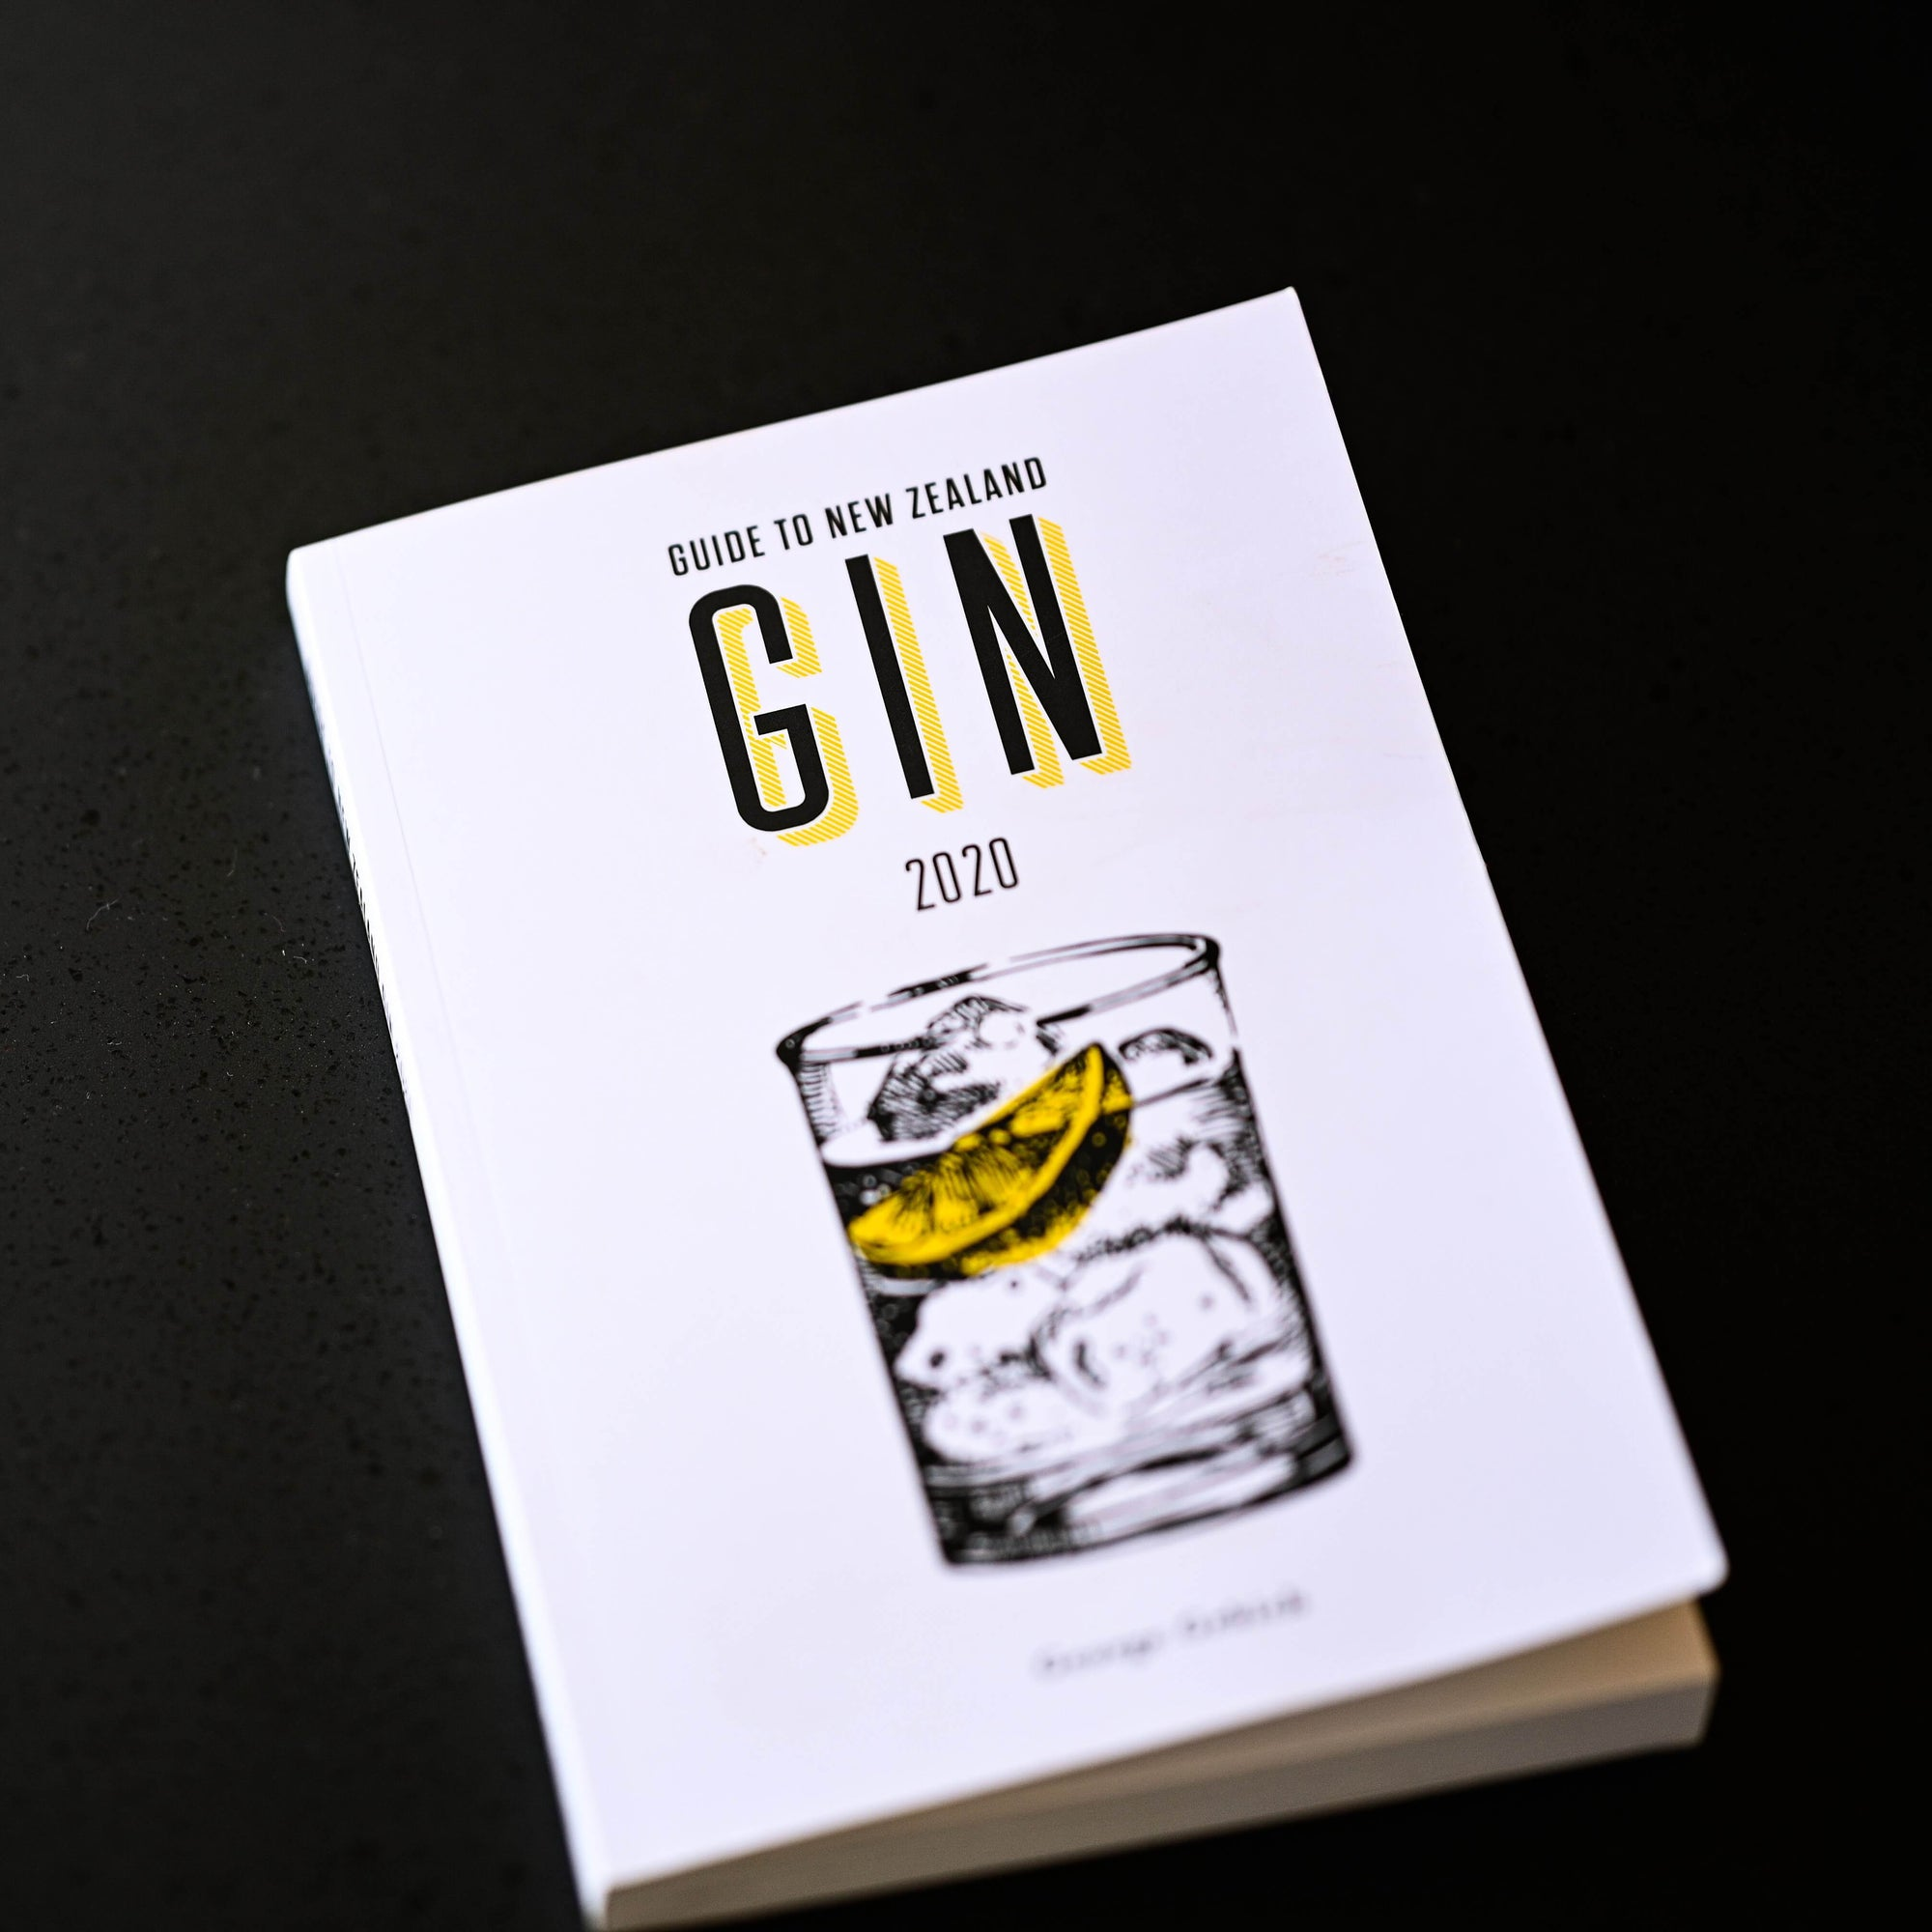 GUIDE TO NEW ZEALAND GIN